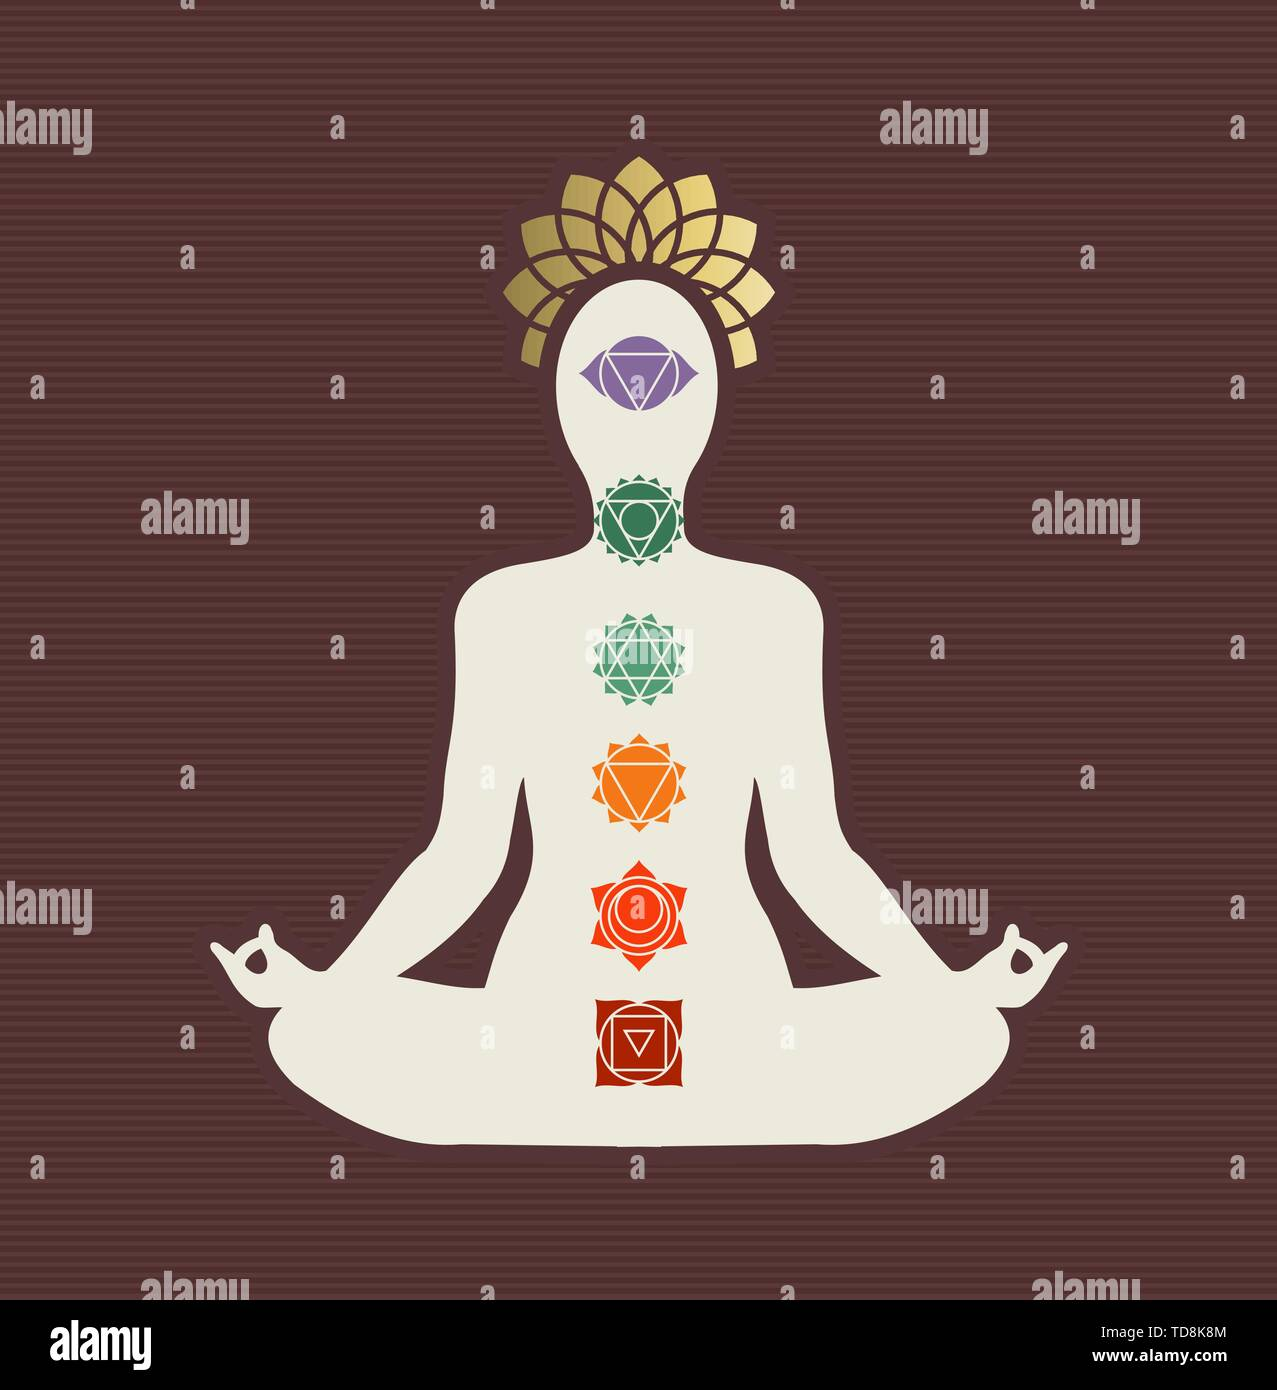 Woman Silhouette Doing Lotus Yoga Pose With Colorful Indian Chakra Icons Zen Meditation Concept Stock Vector Image Art Alamy